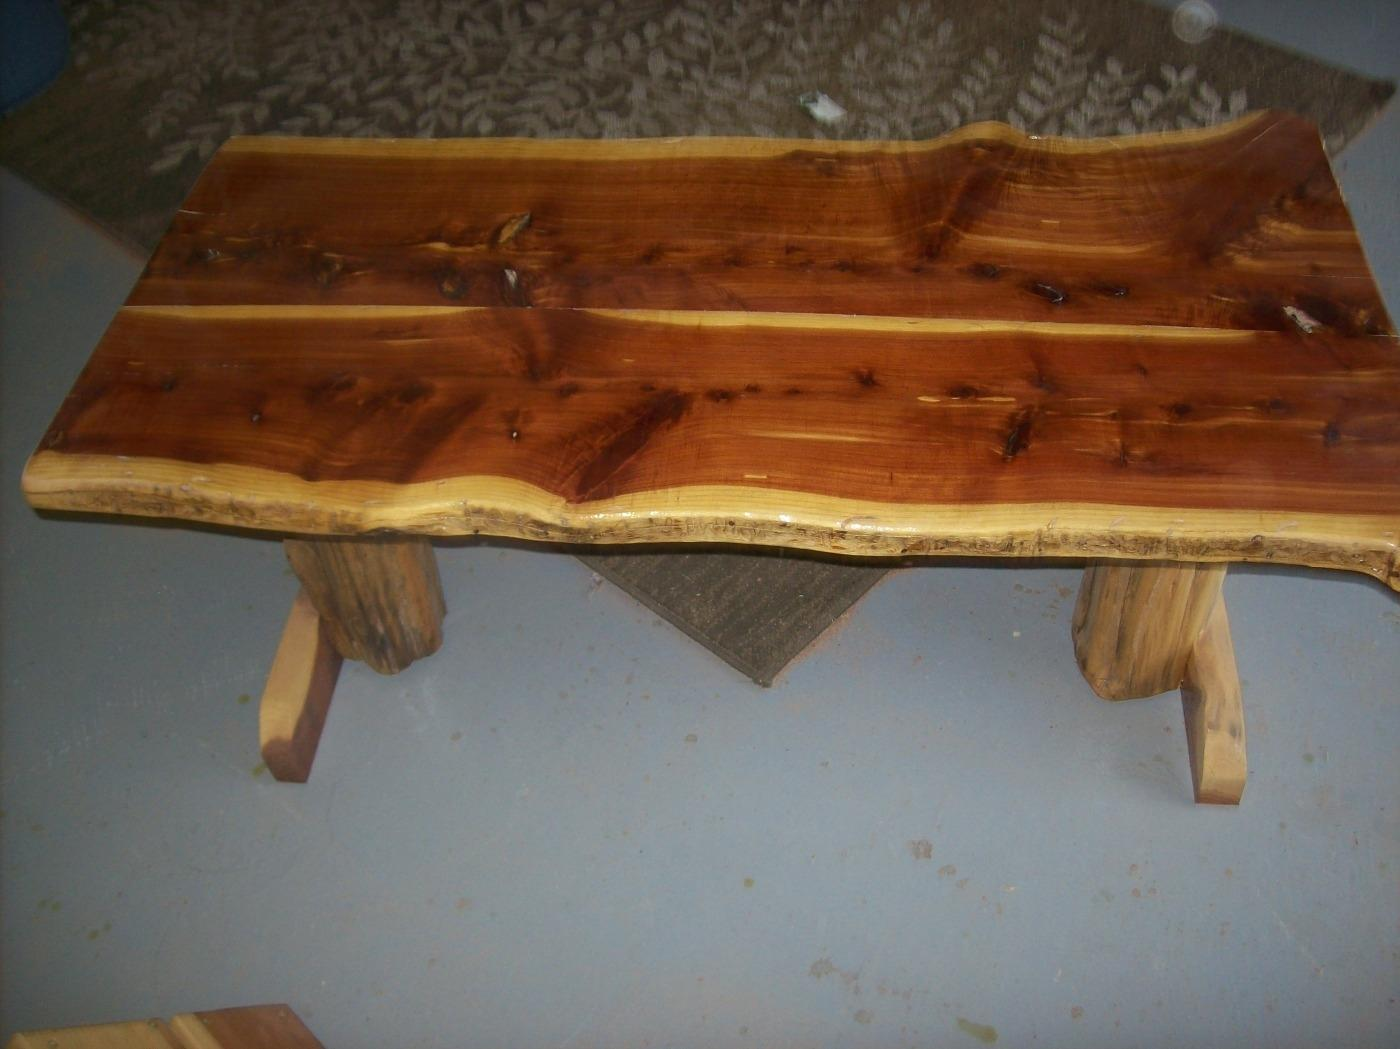 Best Cedar Coffee Table For Sale In Durant Oklahoma For 2020